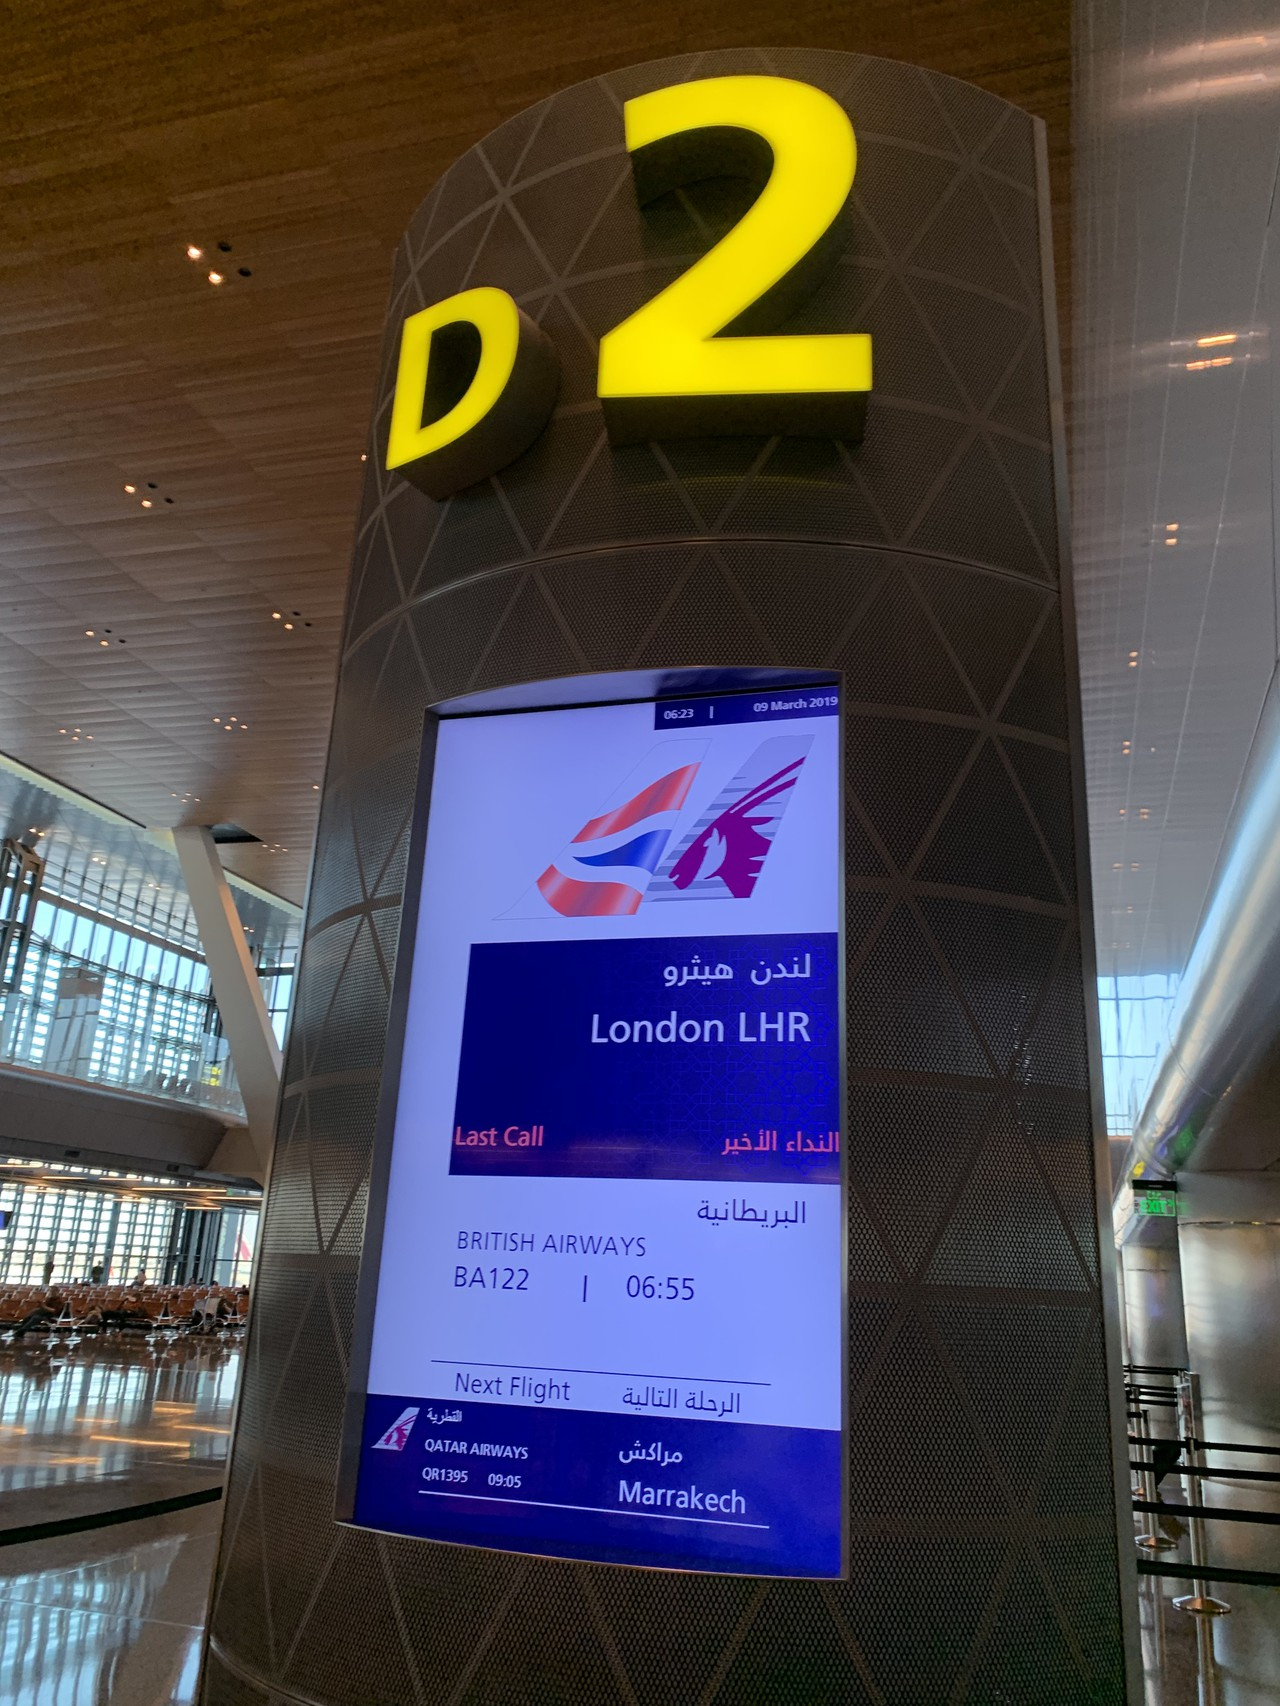 Review of British Airways flight from Doha to London in First